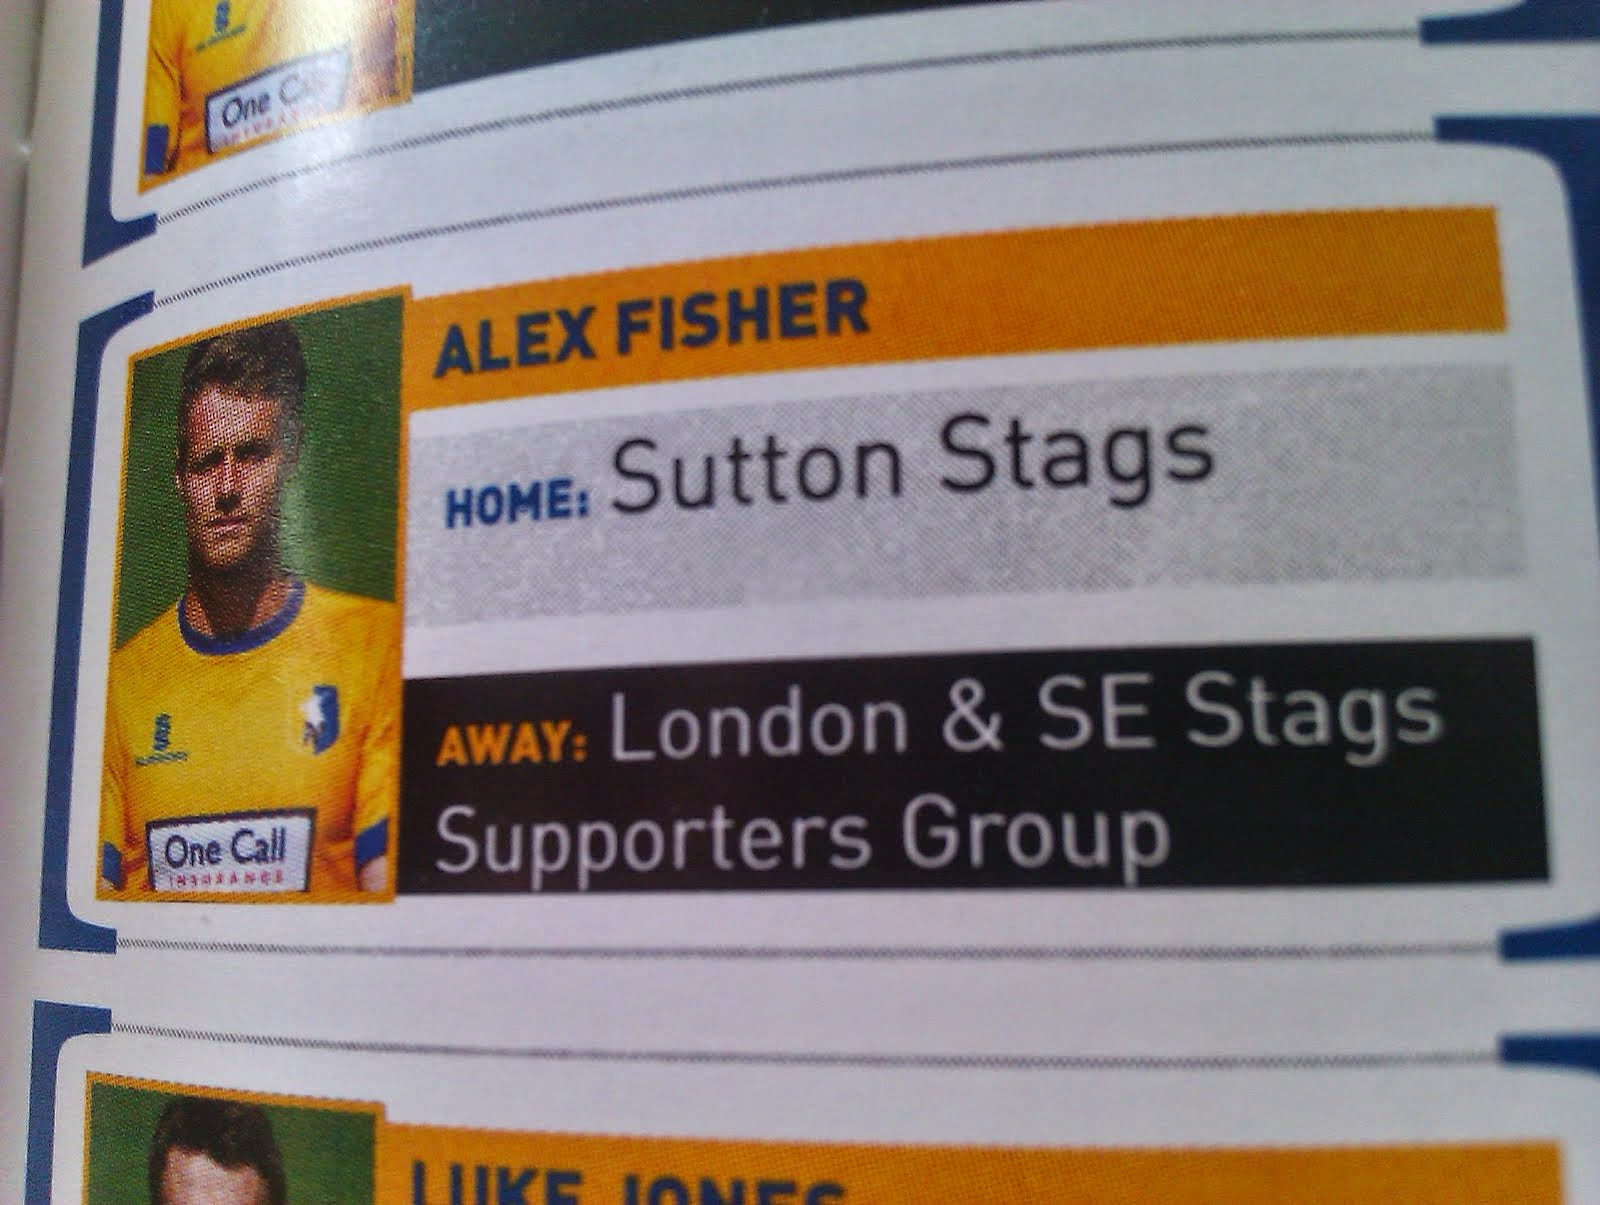 London & South East Stags are sponsoring Alex Fisher's away shirt in 2014/15